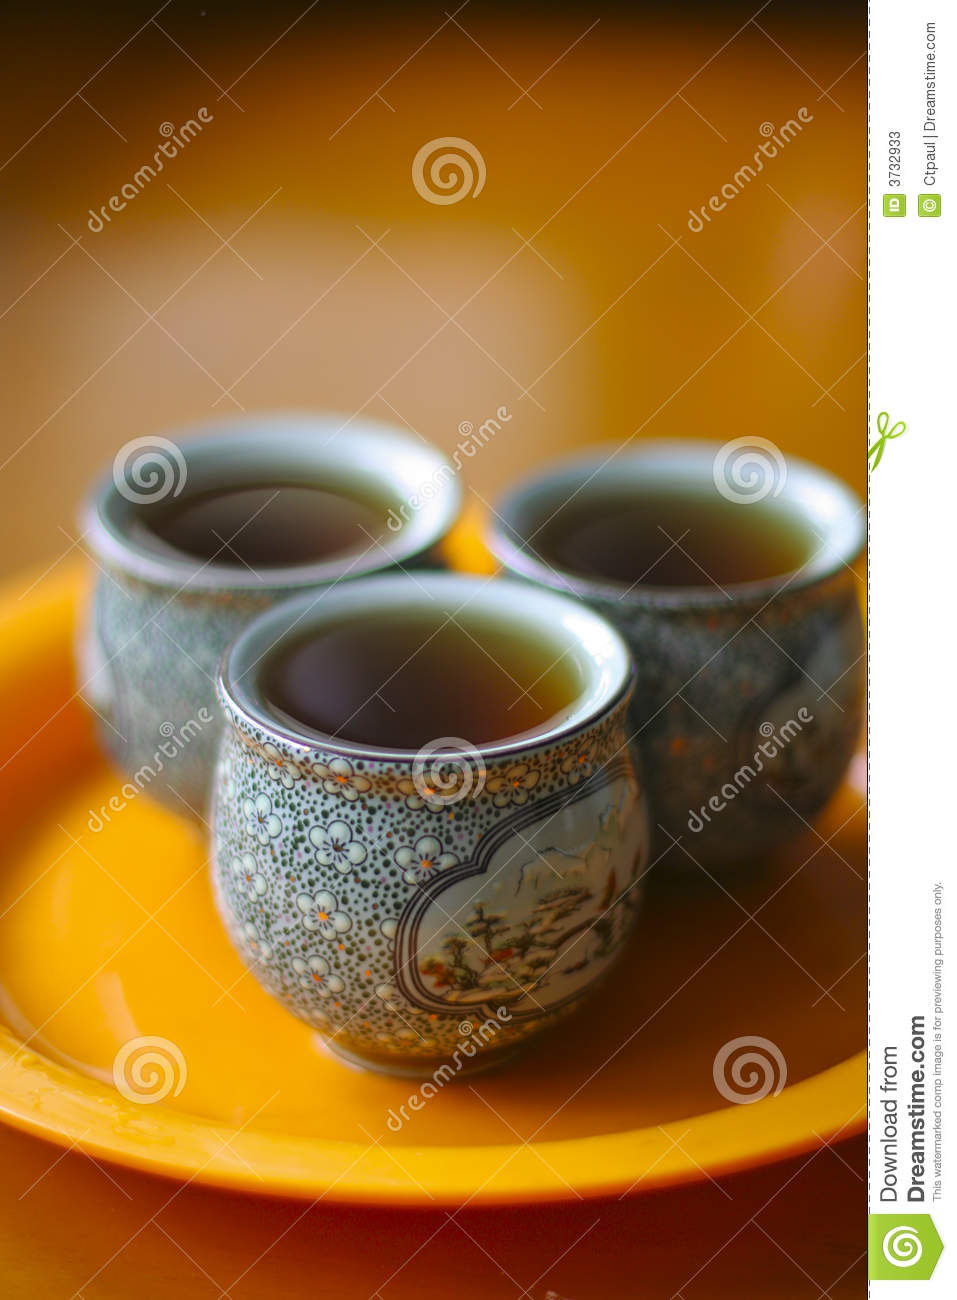 three cups of tea essay three cups of tea were exposed because it saved him bigger trouble